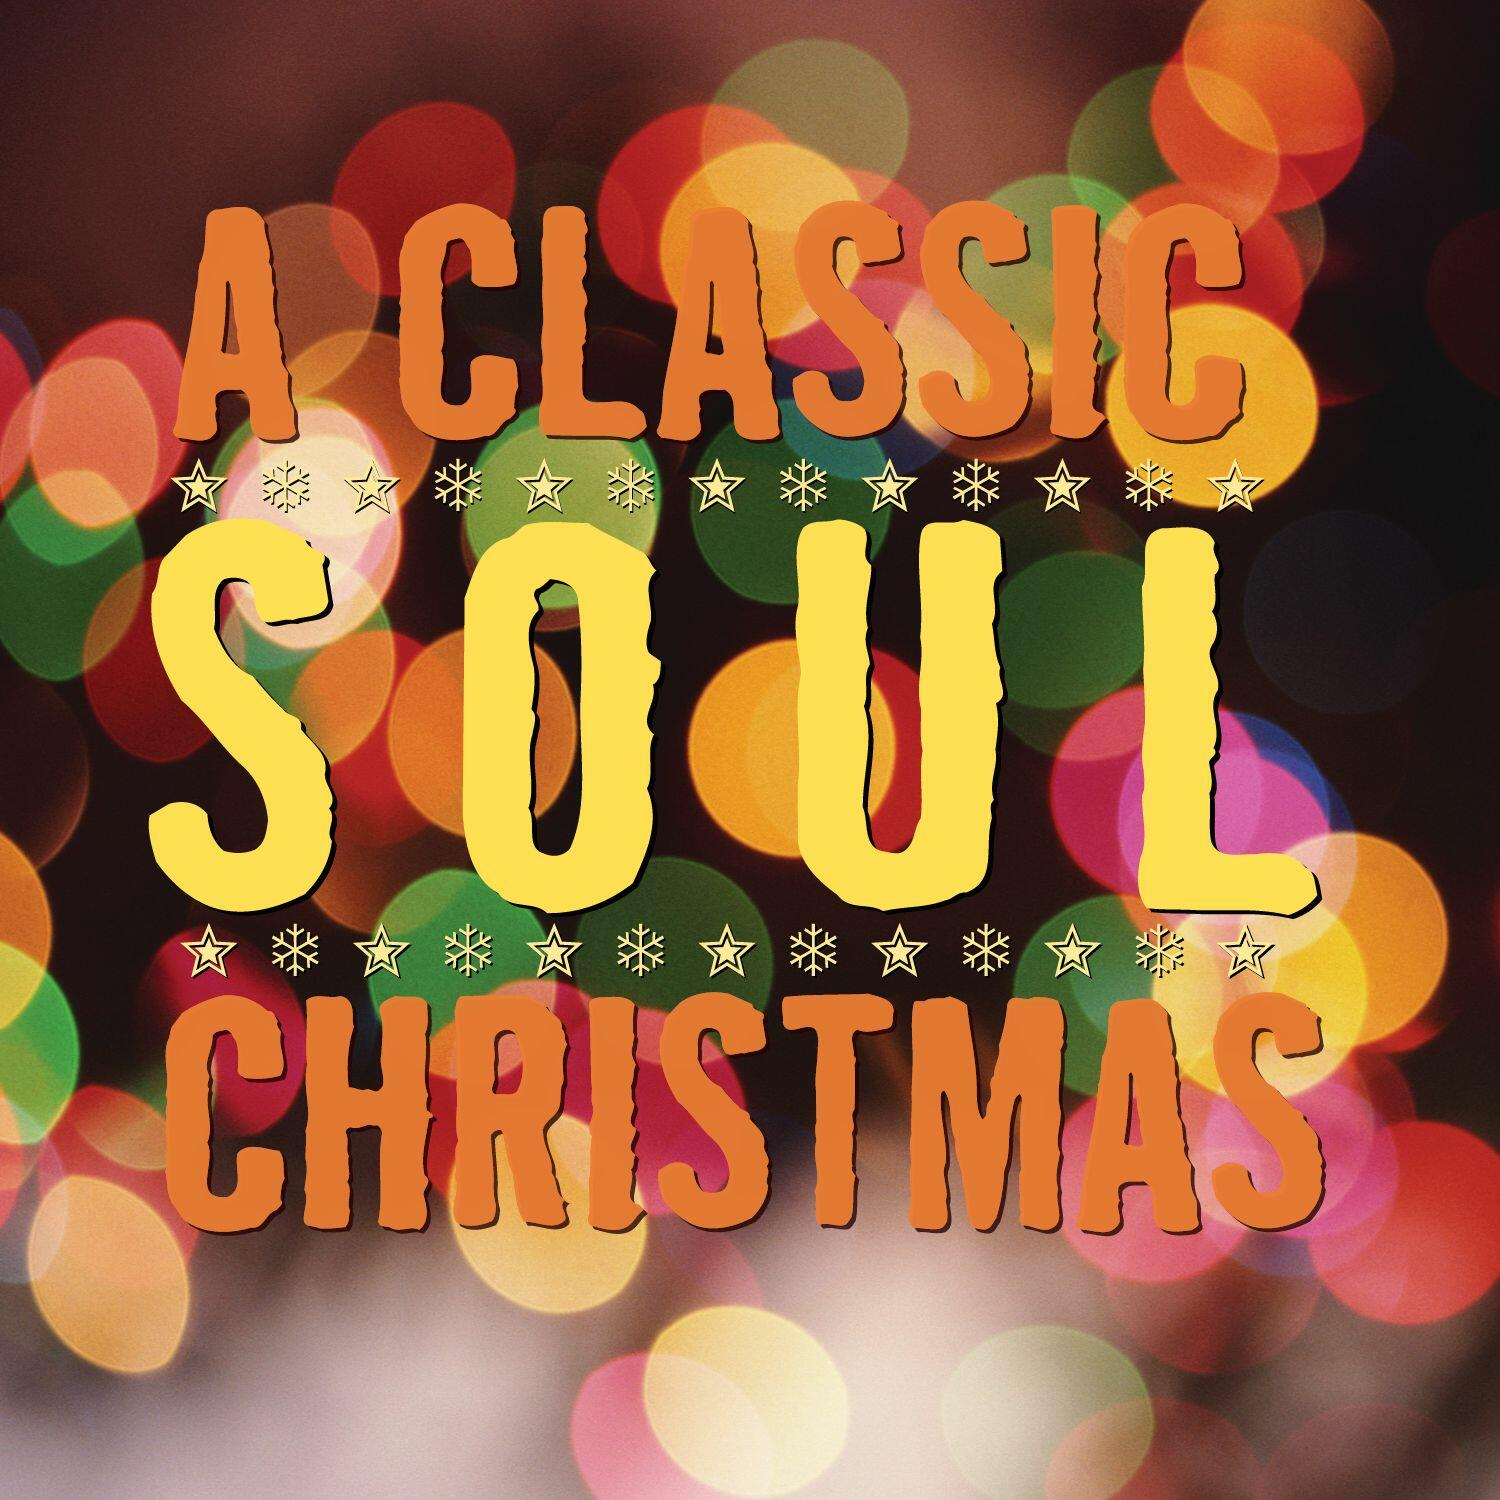 christmas soul classic temptations donny doing album hathaway various artists everything eve amazon music fm whiz gee curtis king 8tracks